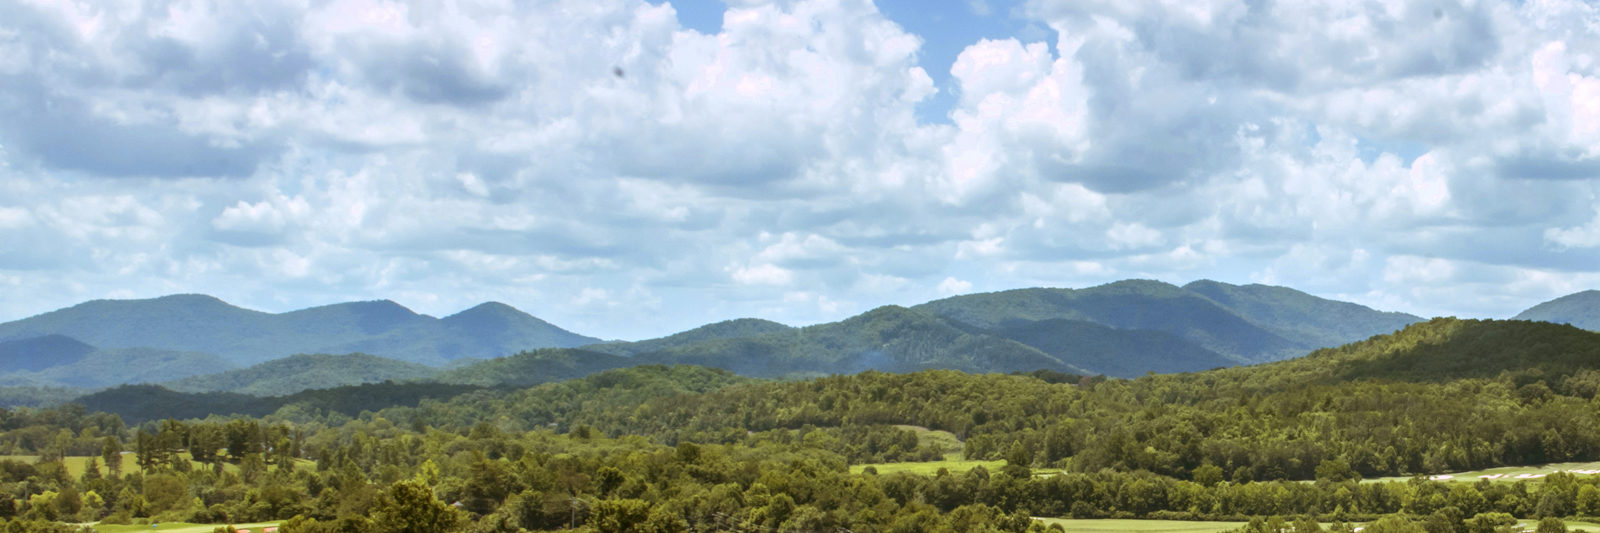 BrasstownValleyResort Header BlueRidgeMountainRange